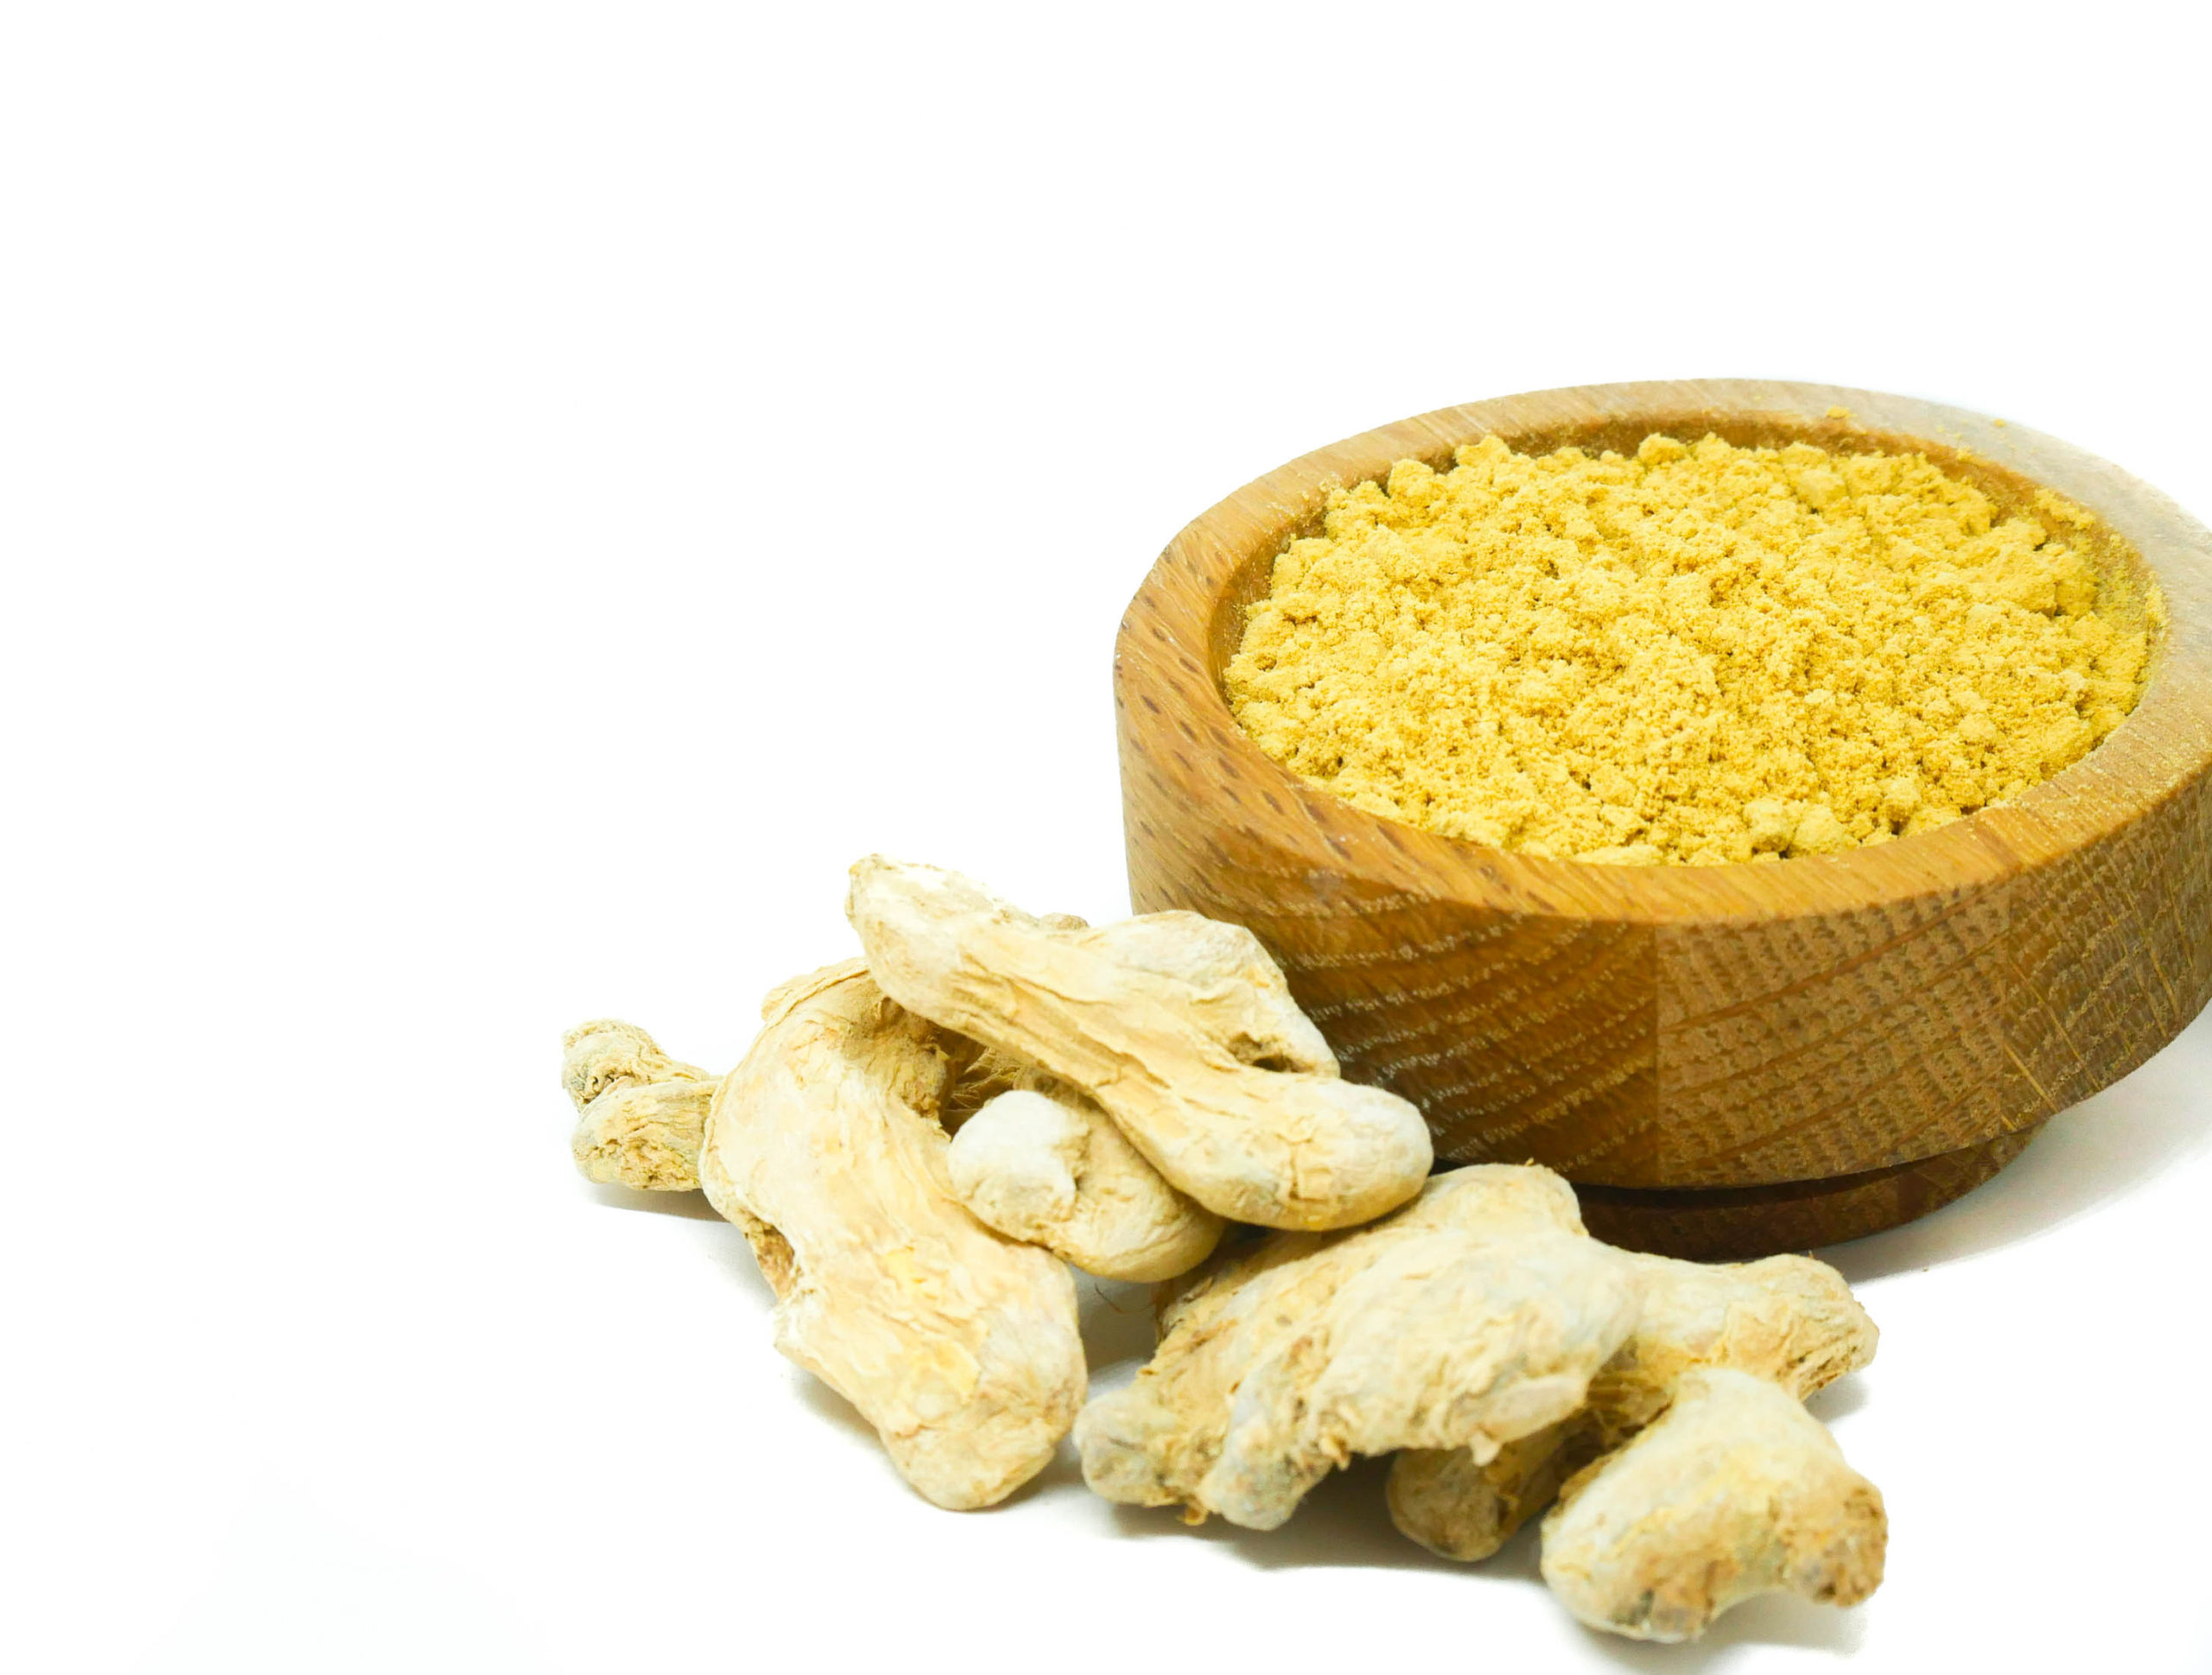 Whole and ground Ginger Root from the Natural Spot